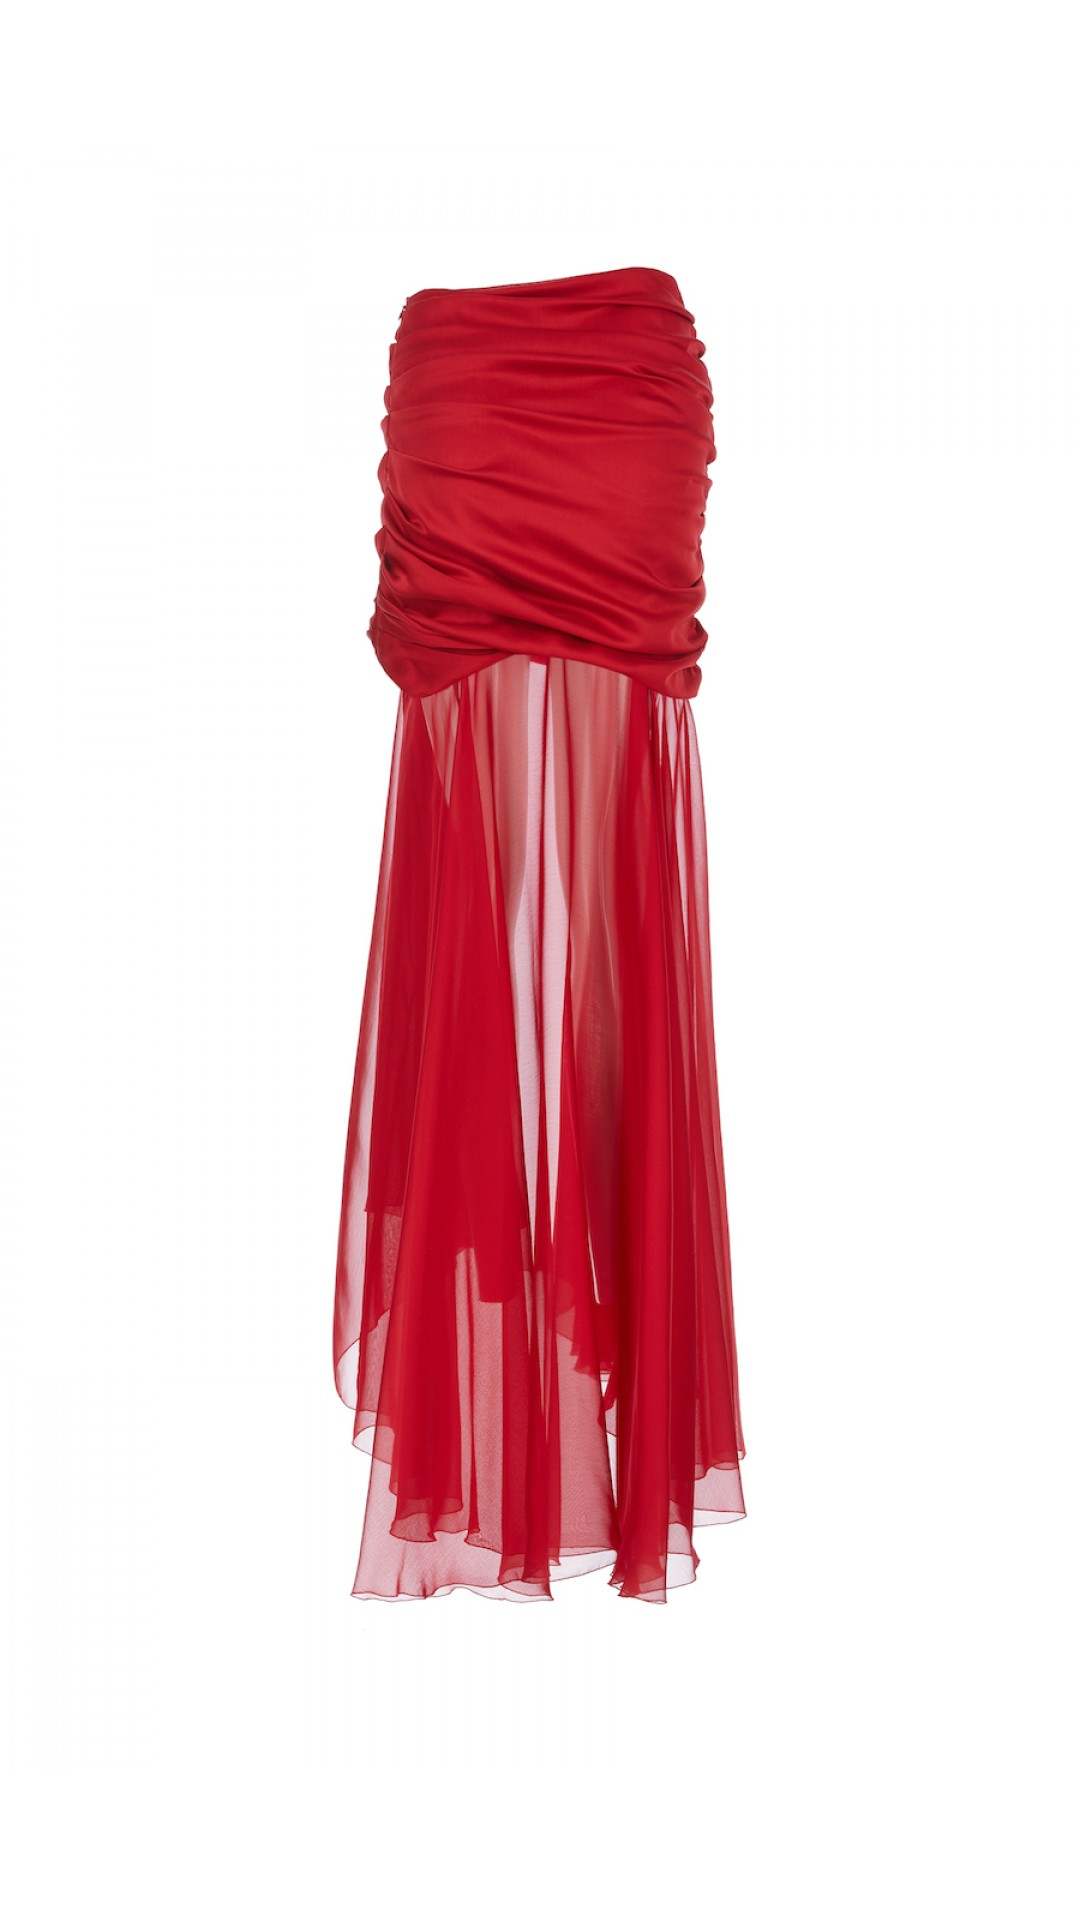 RED SKIRT WITH CHIFFON DETAIL